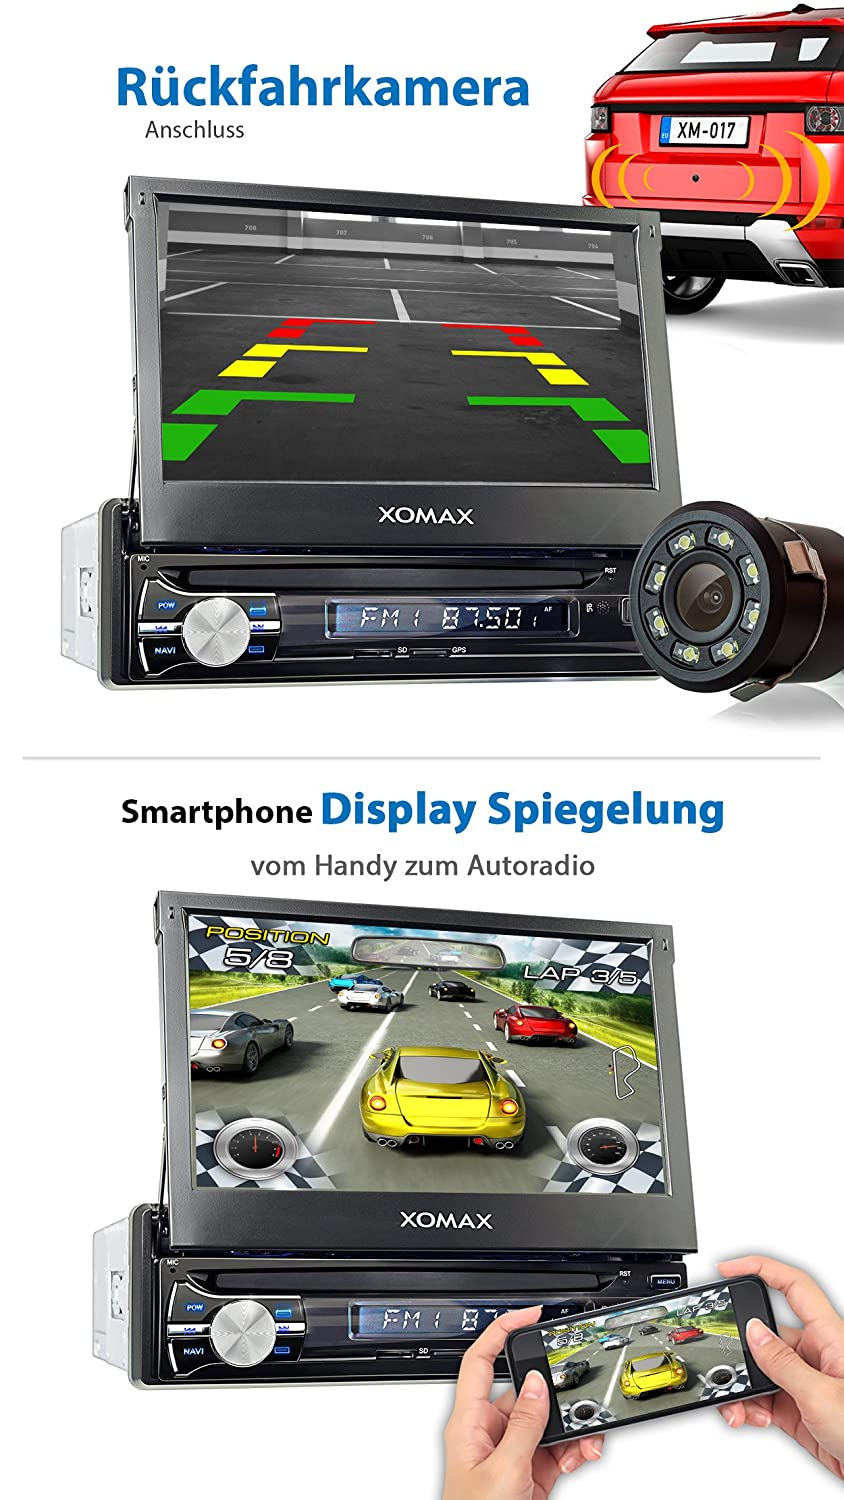 XOMAX Xm-Va714 Android 6.0.1 Car Radio: Amazon.in: Electronics